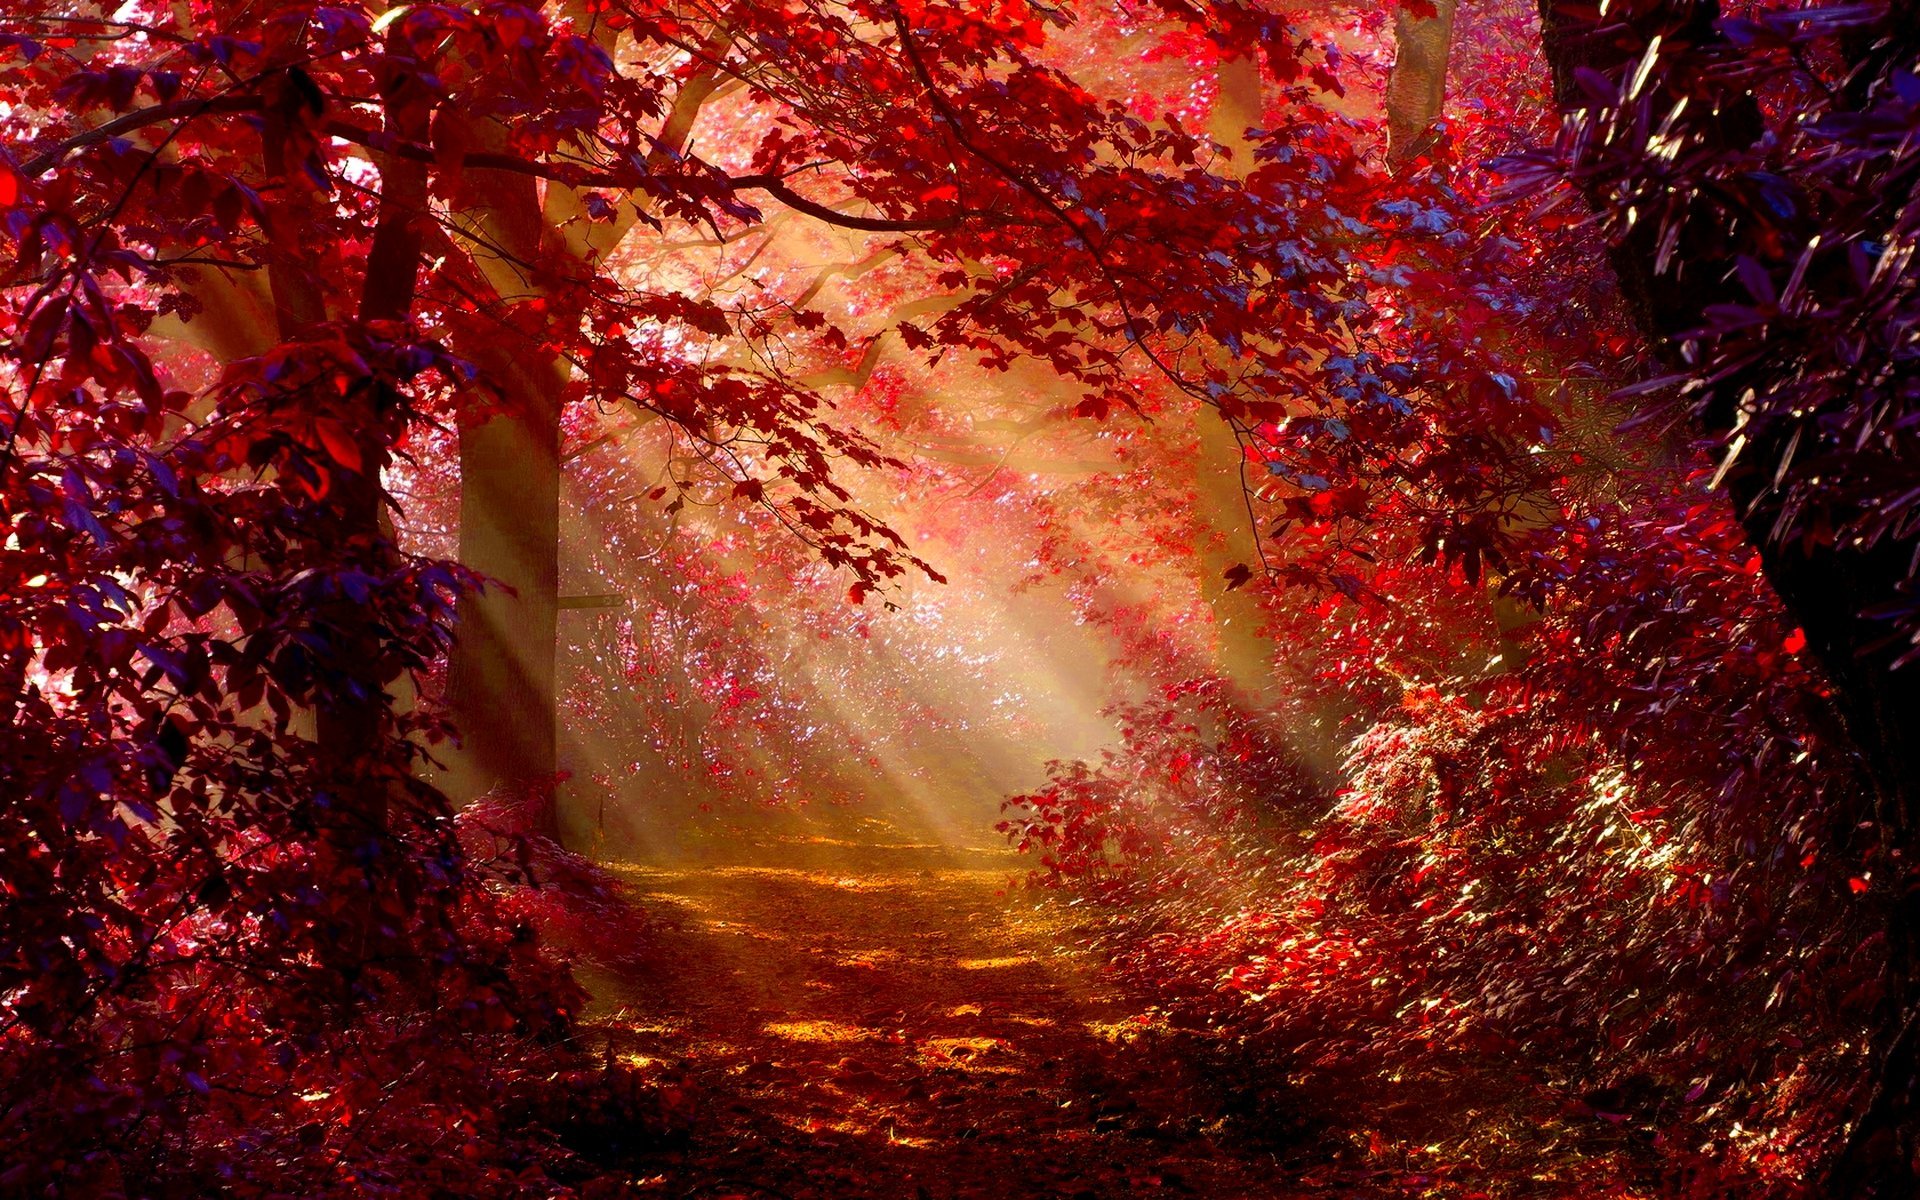 Fall Leaves Pathway Computer Wallpaper Sunlight In Autumn Forest Full Hd Wallpaper And Background